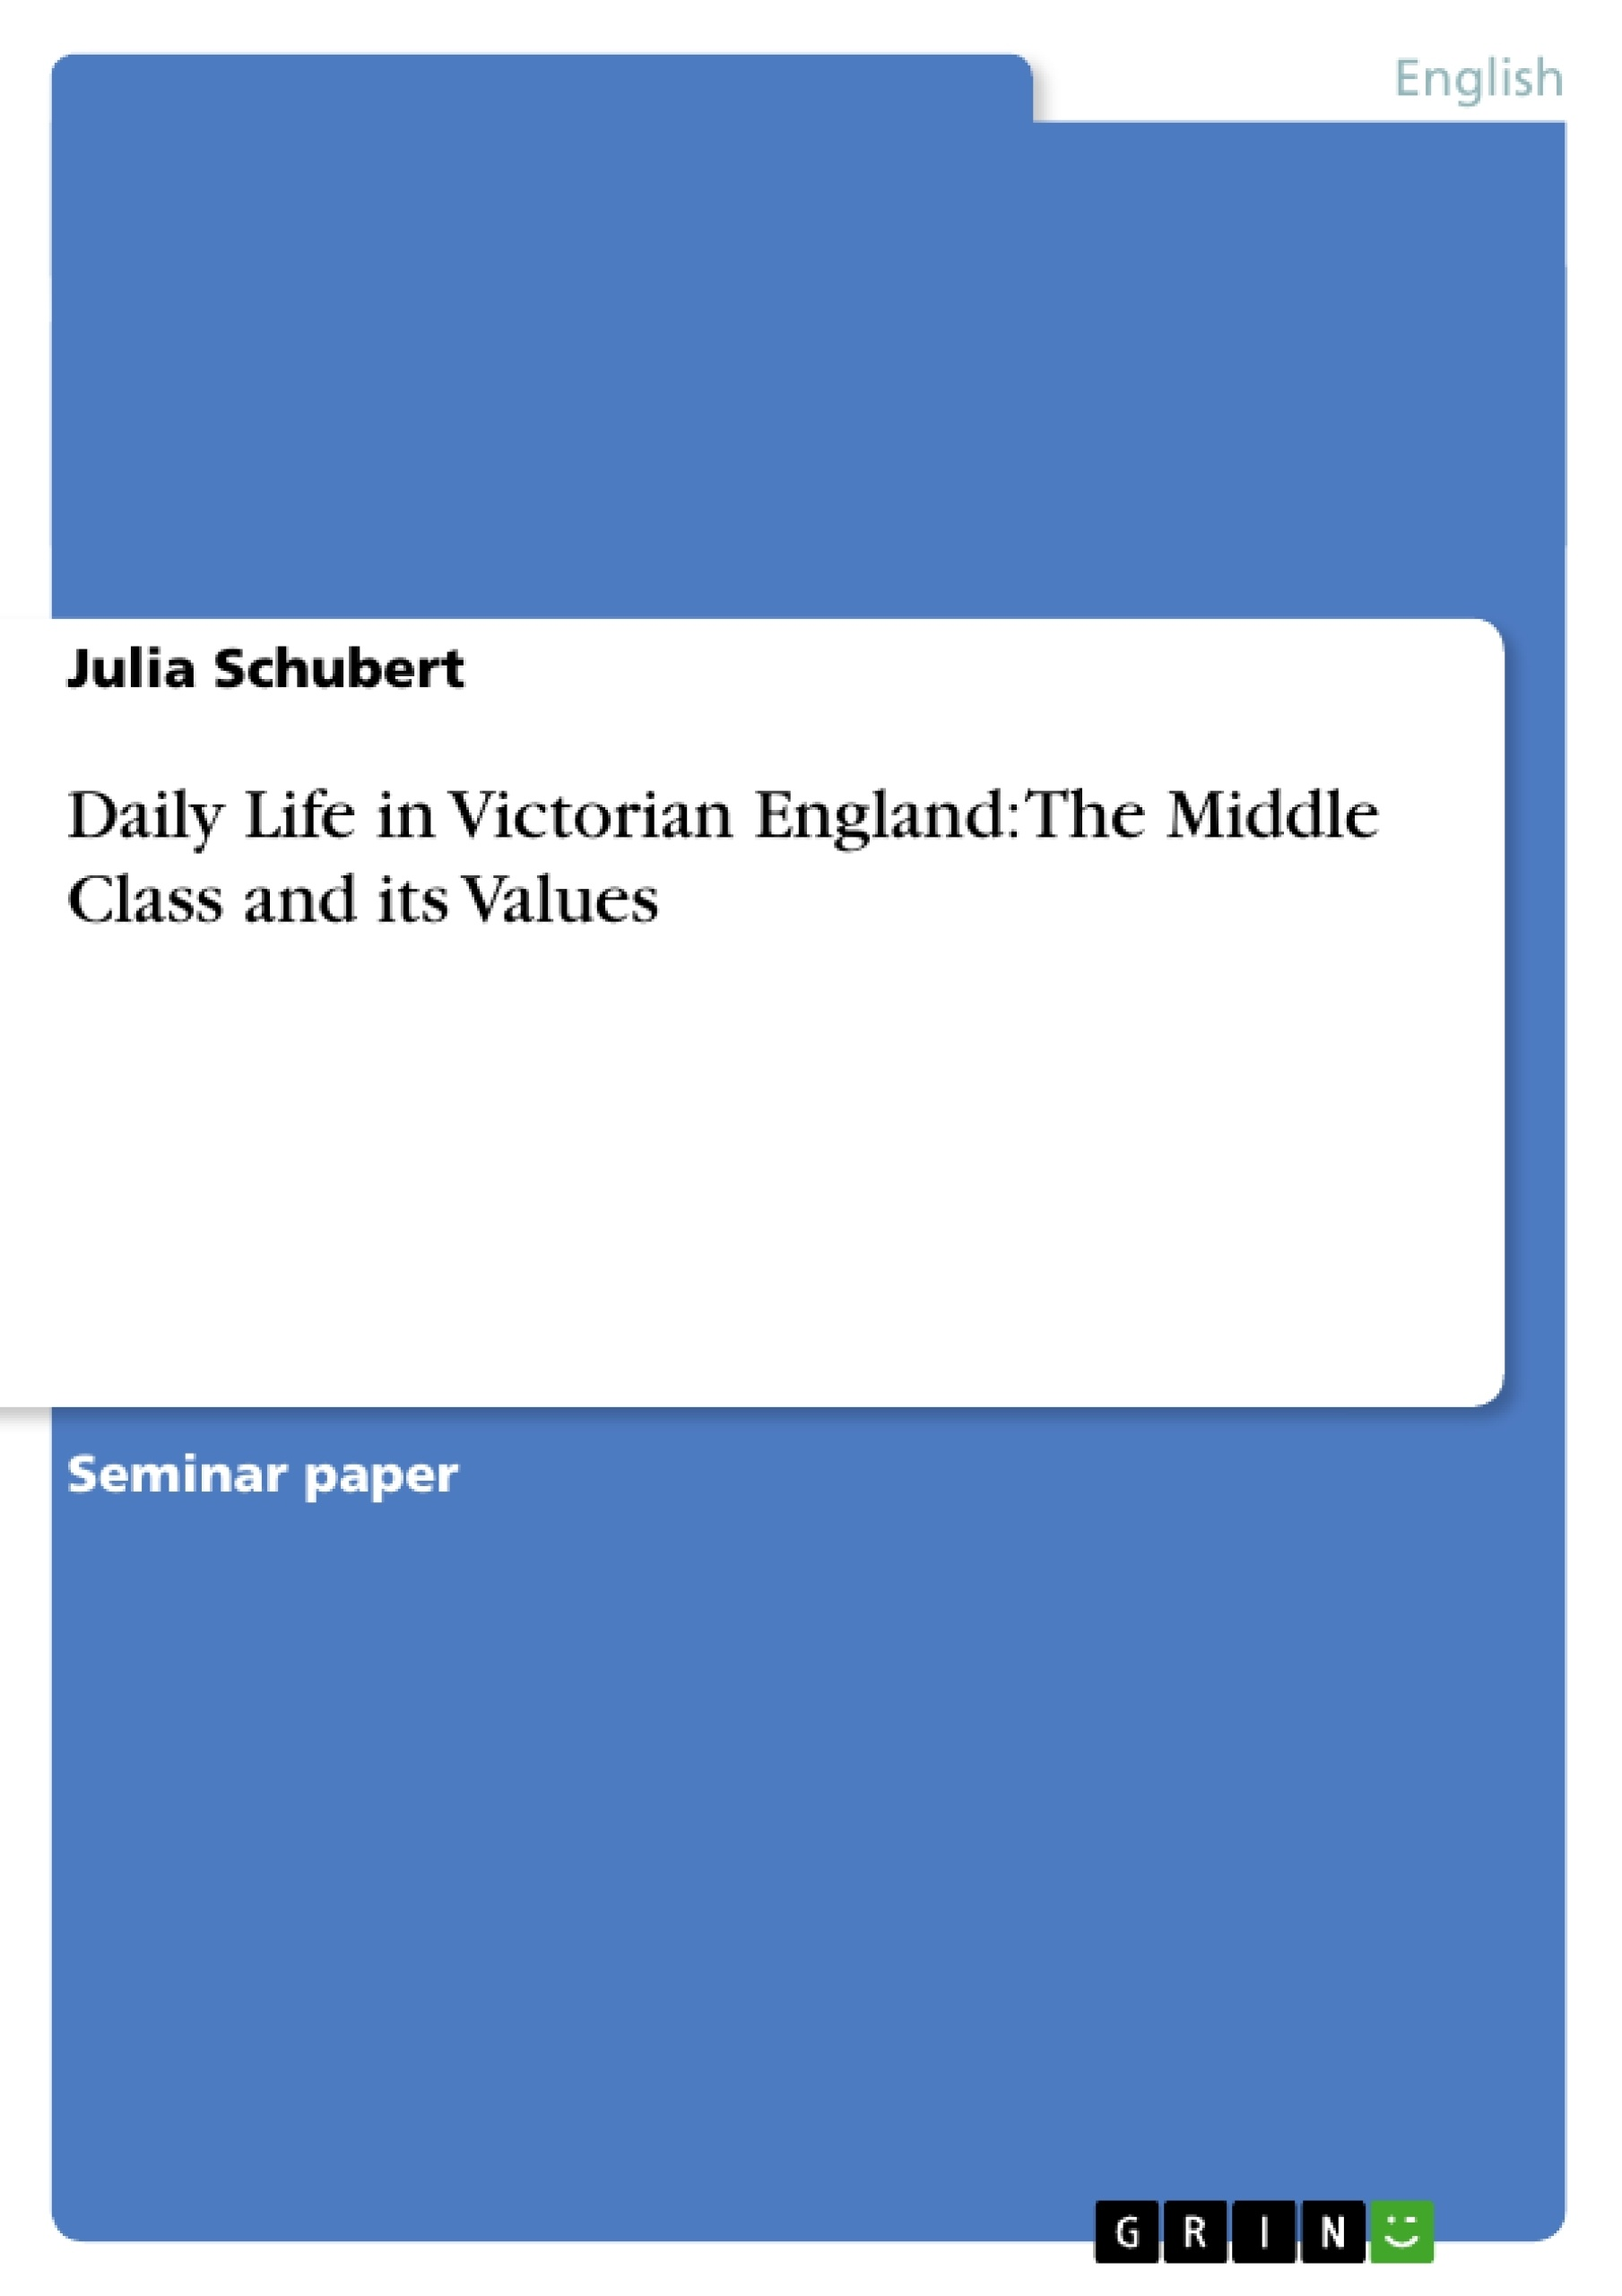 Title: Daily Life in Victorian England: The Middle Class and its Values